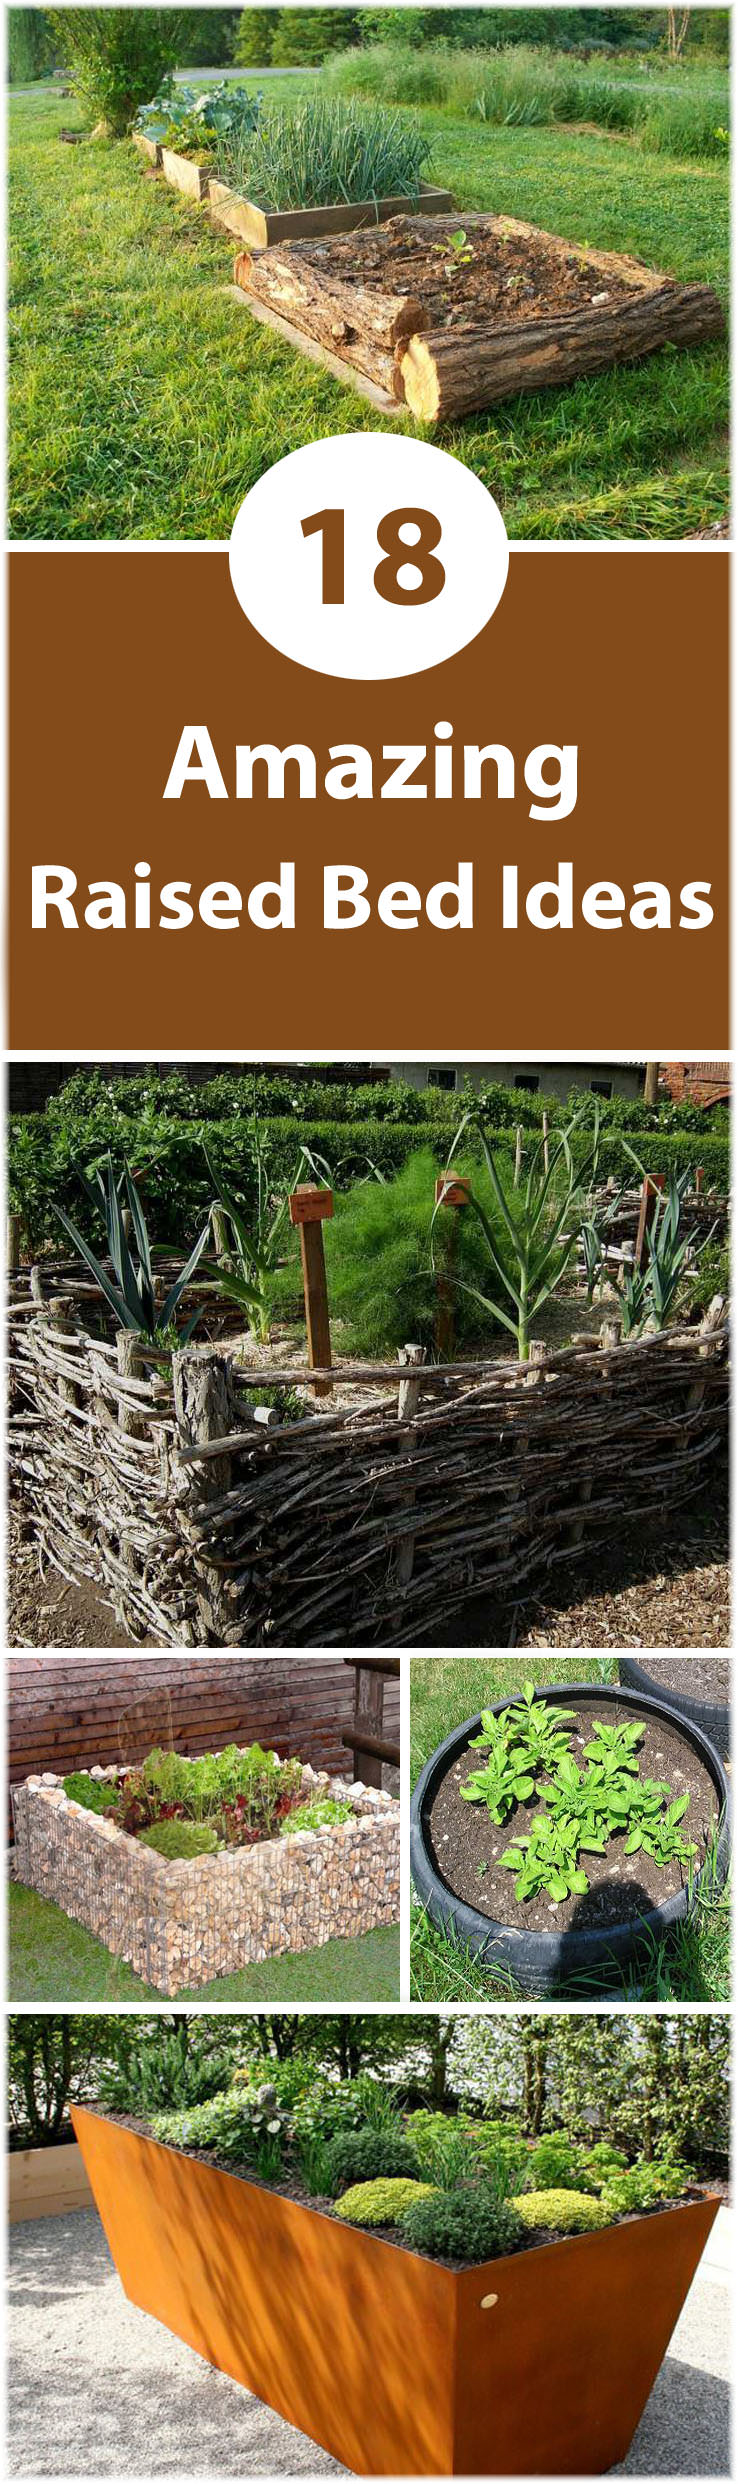 Garden Raised Bed Ideas 18 great raised bed ideas raised bed gardening balcony garden web see these 18 raised bed ideas for your garden raised bed gardening improves the productivity workwithnaturefo